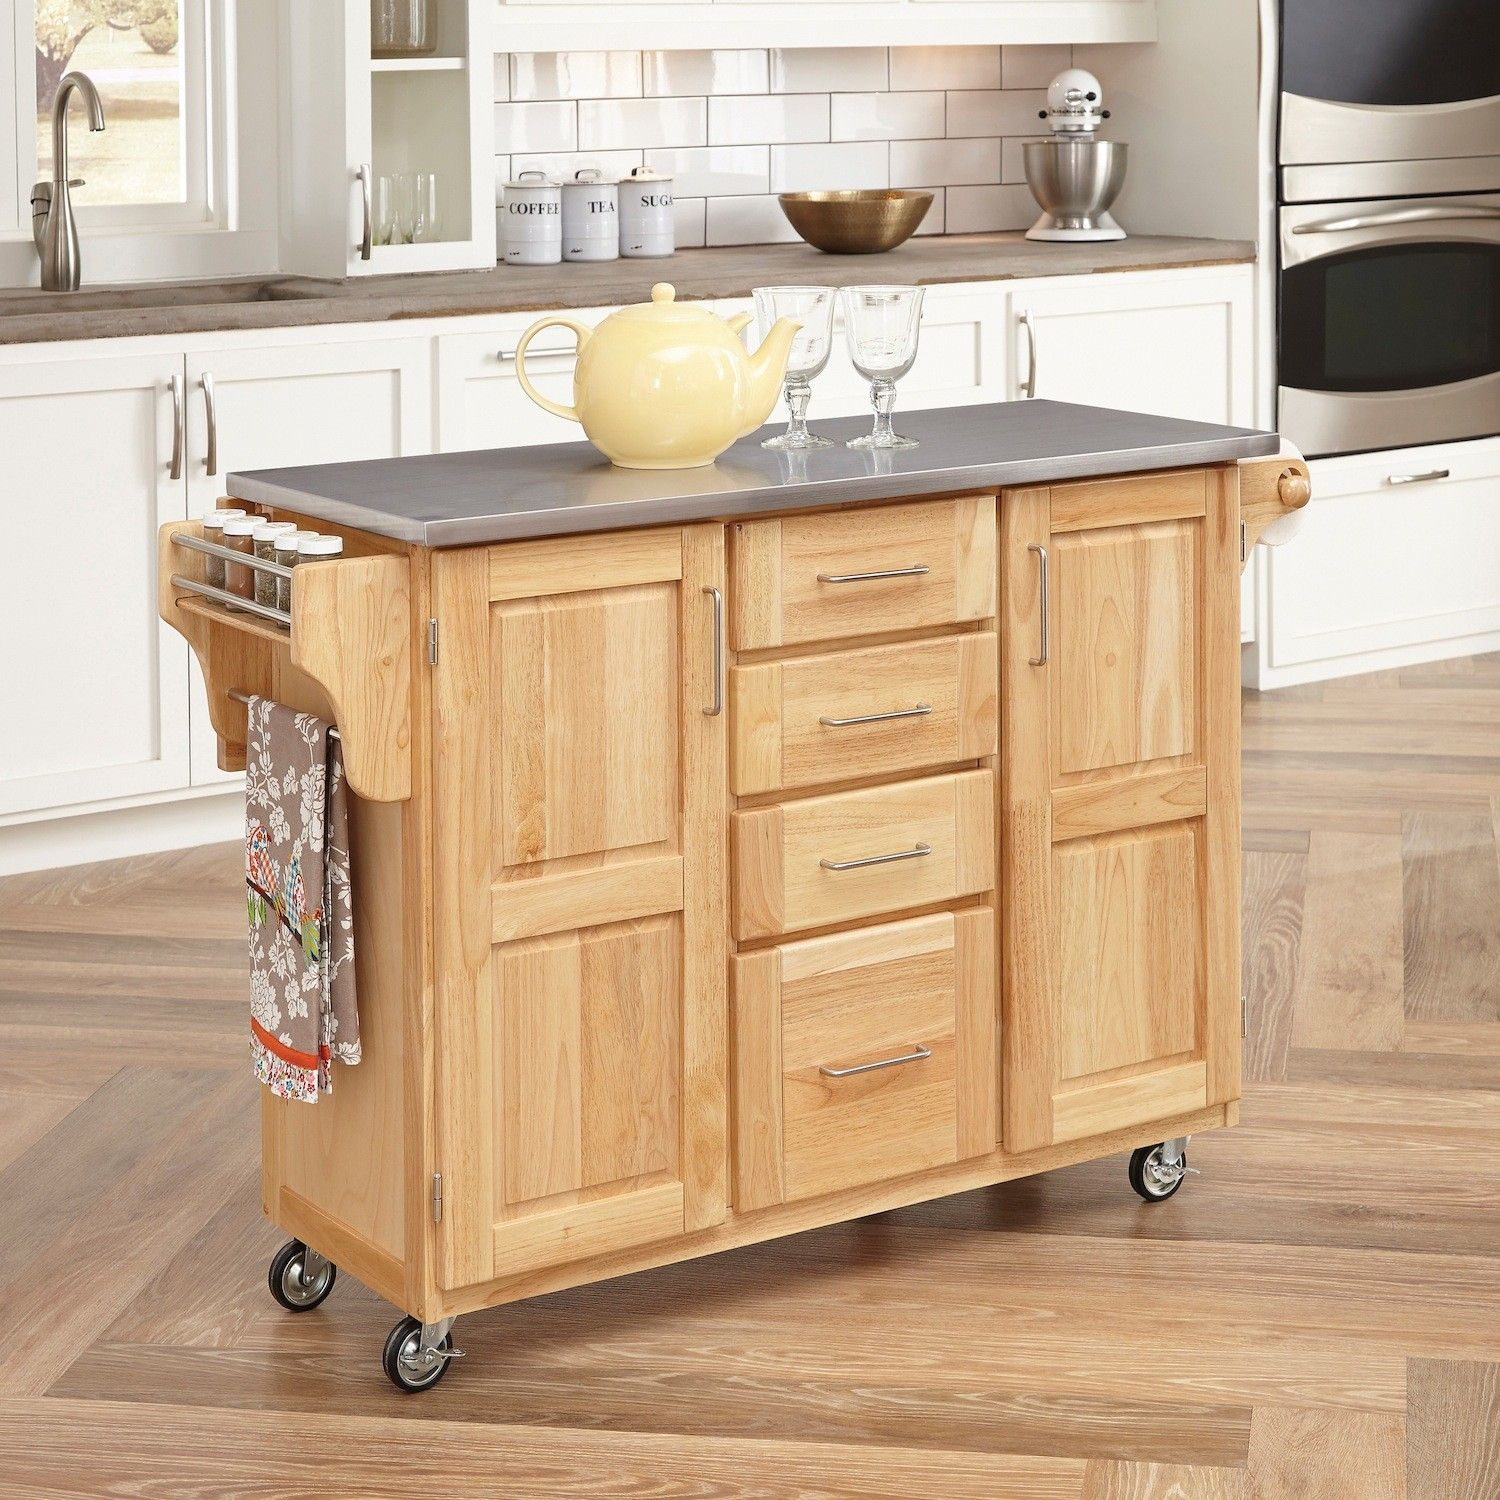 home styles kitchen island with stainless steel top reviews wayfair breakfast bar kitchen on kitchen island ideas kitchen bar carts id=22086